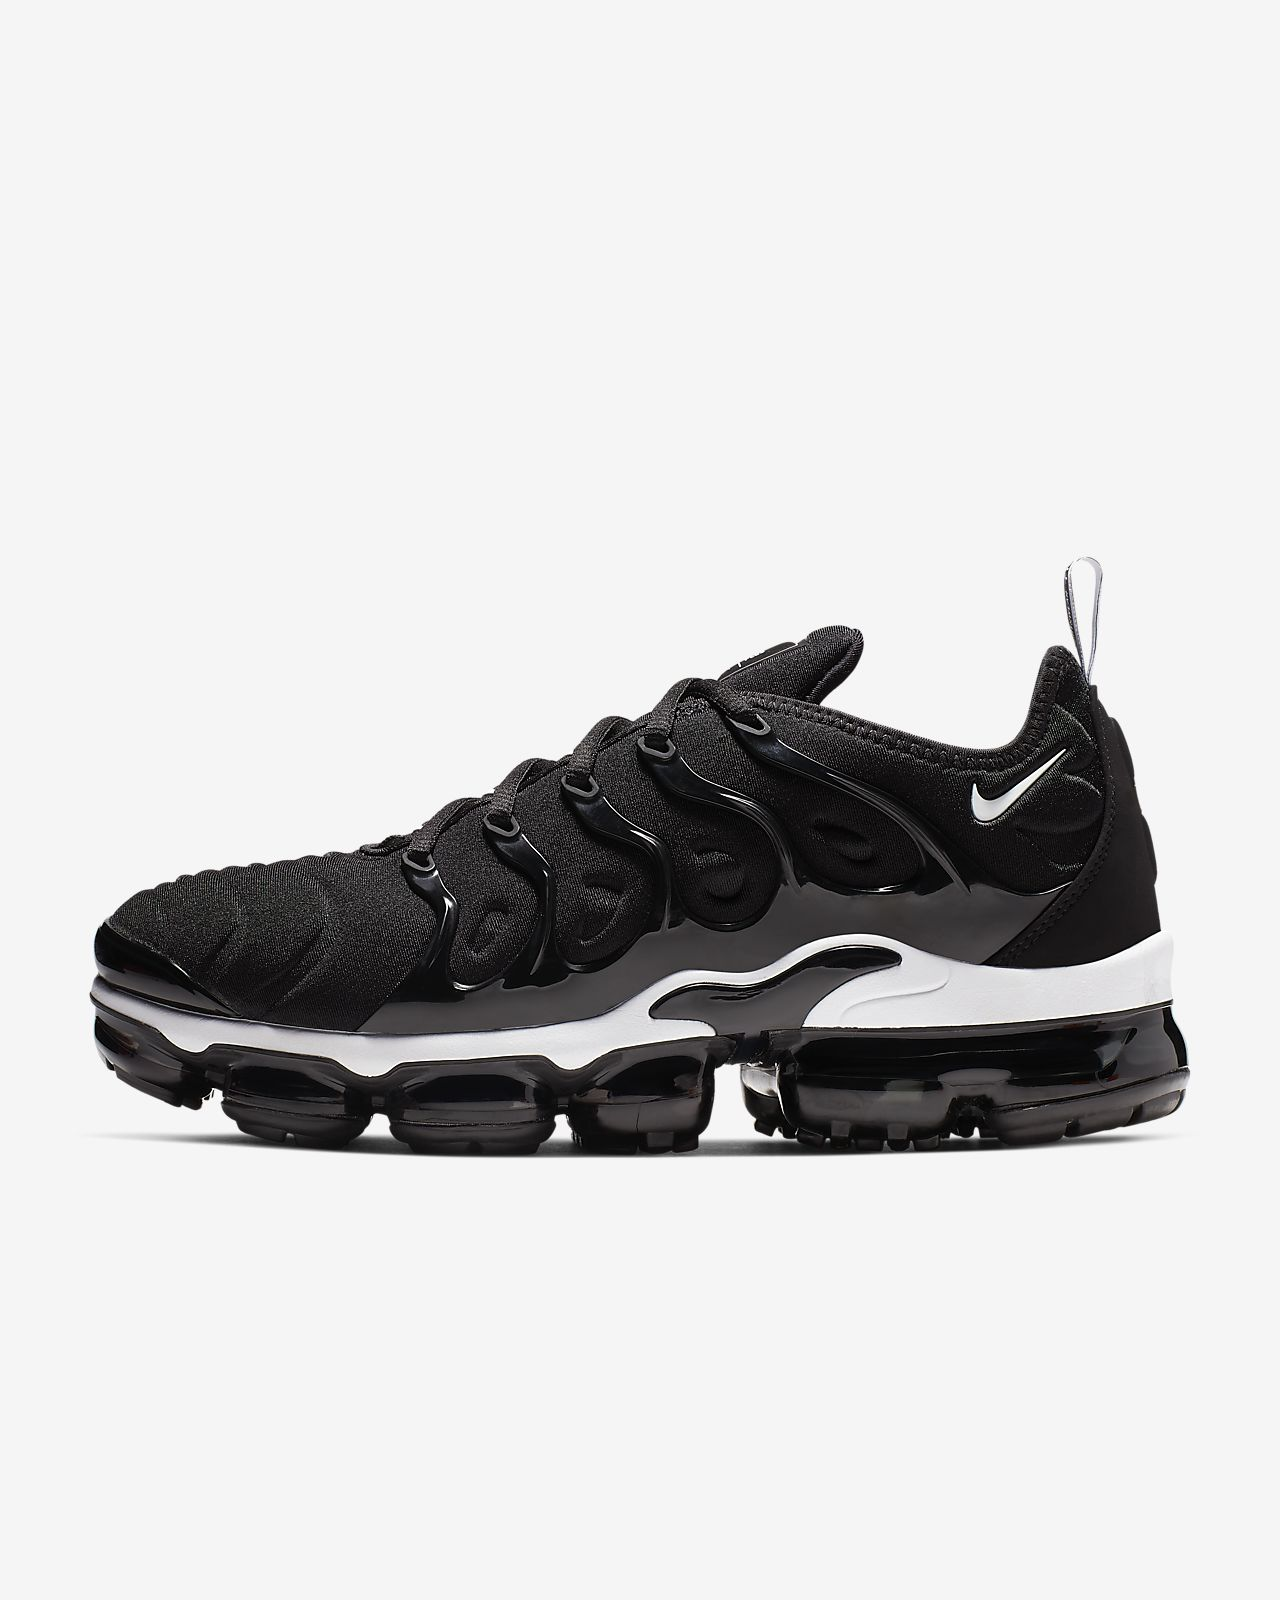 sneakers for cheap 9bd63 8bf9f ... Chaussure Nike Air VaporMax Plus pour Homme